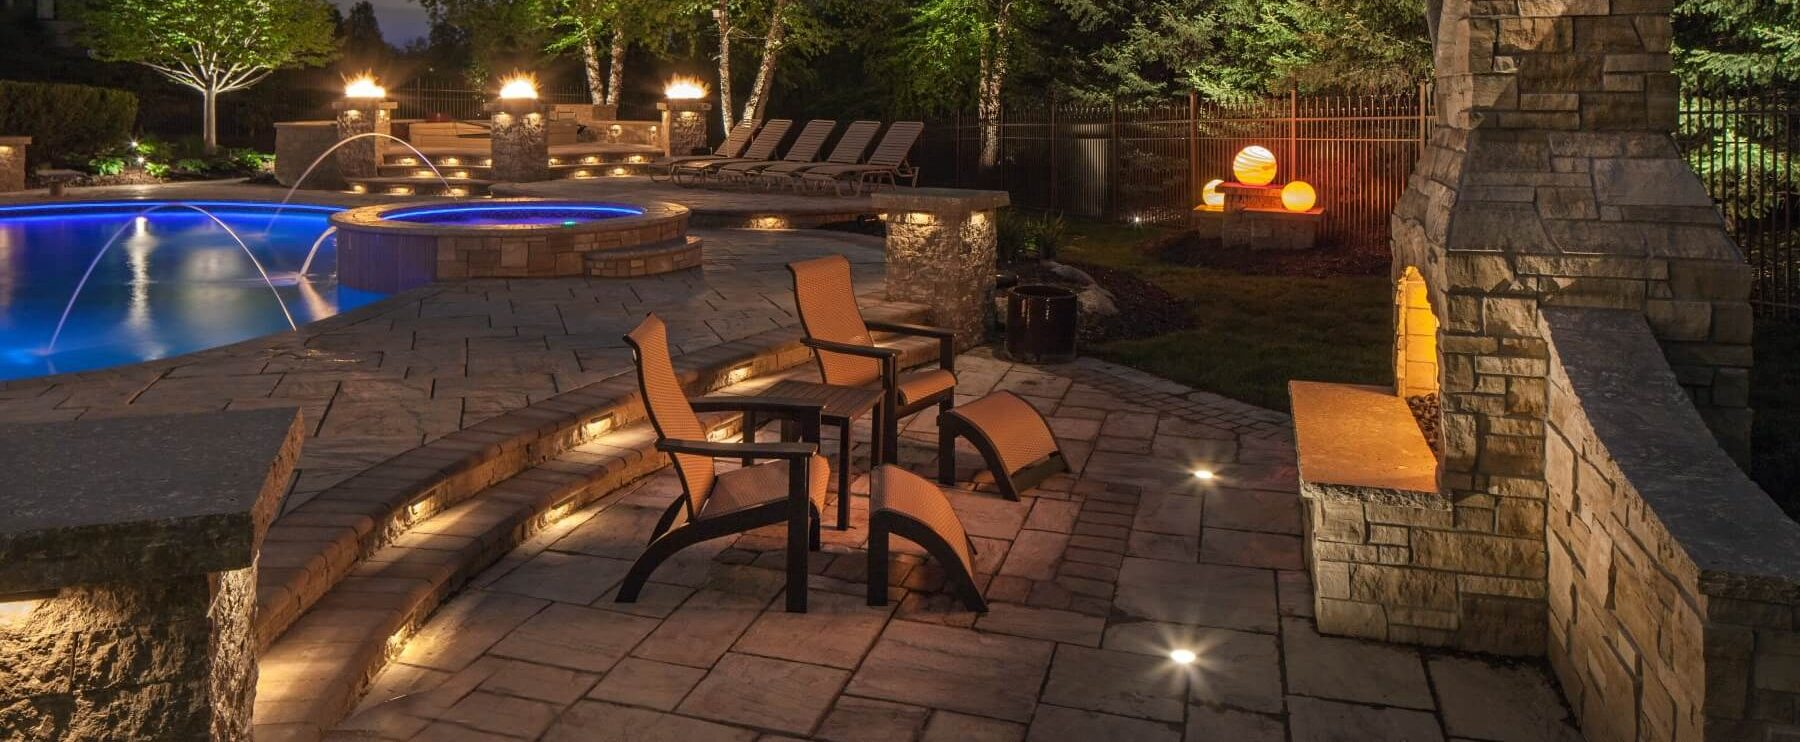 Outdoor lighting ideas inspiration mckay landscape lighting outdoor landscape lighting ideas inspiration aloadofball Images